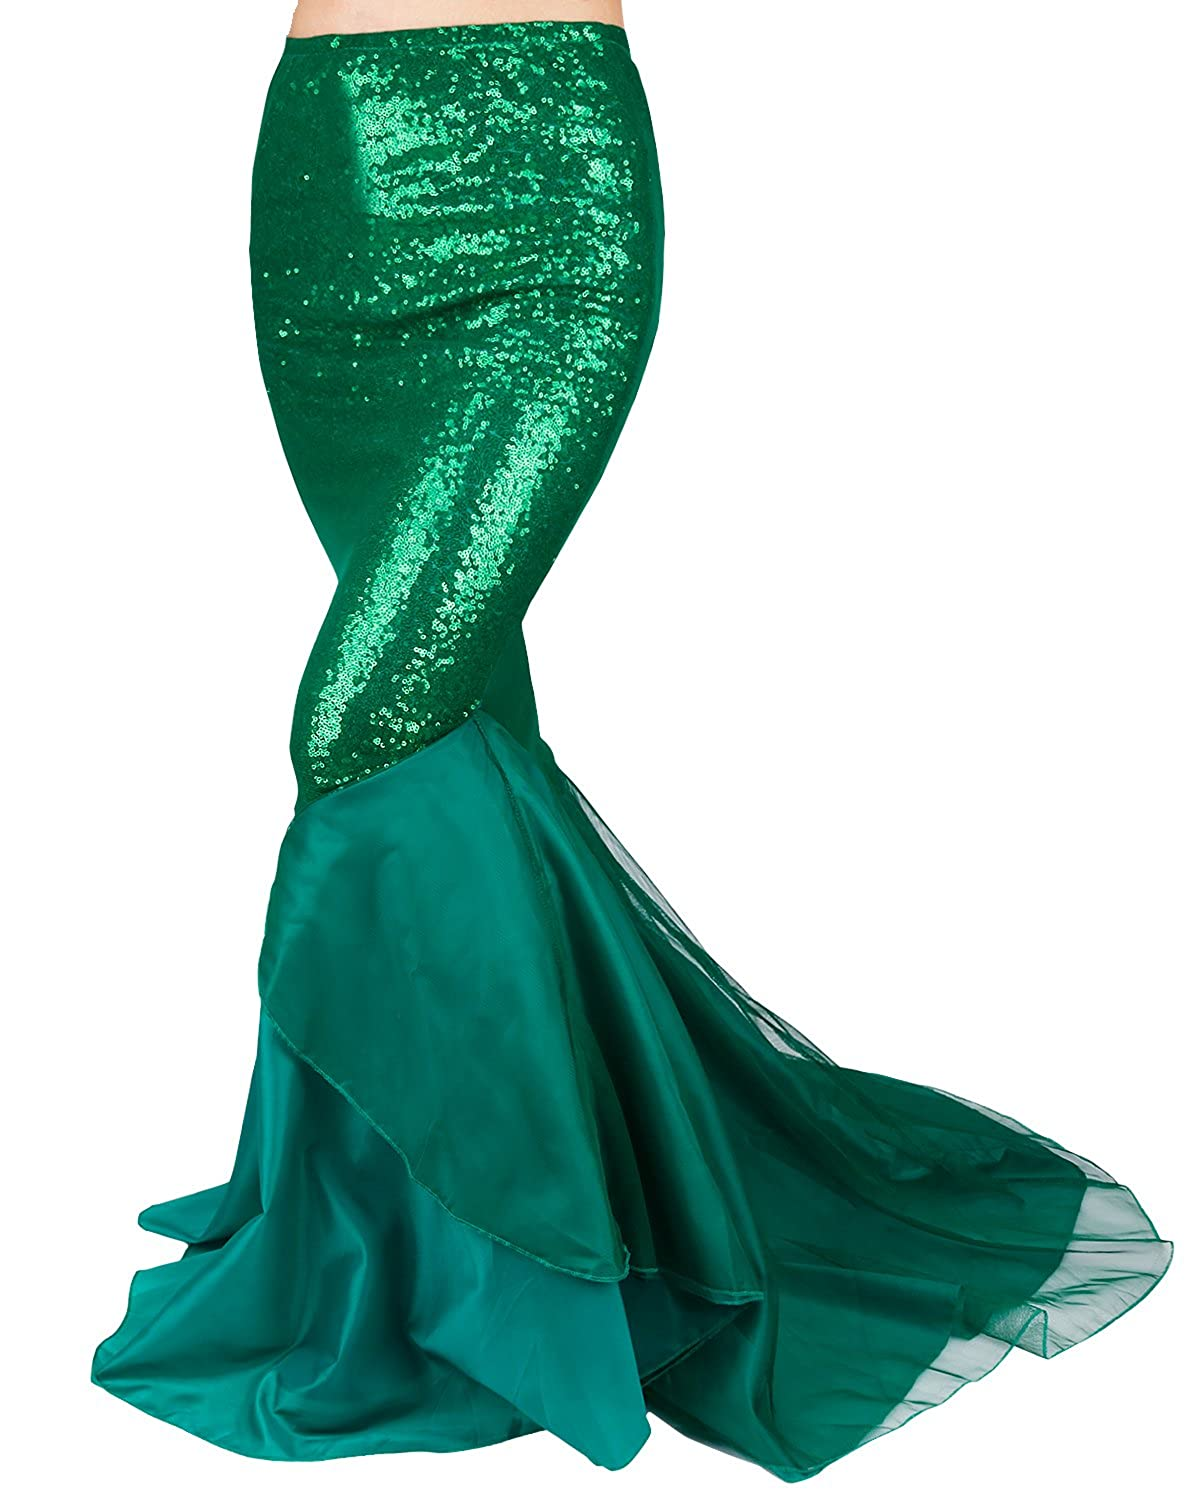 Women's Green Sequin Asymmetric Mesh Panel Mermaid Tail Costume Skirt - DeluxeAdultCostumes.com